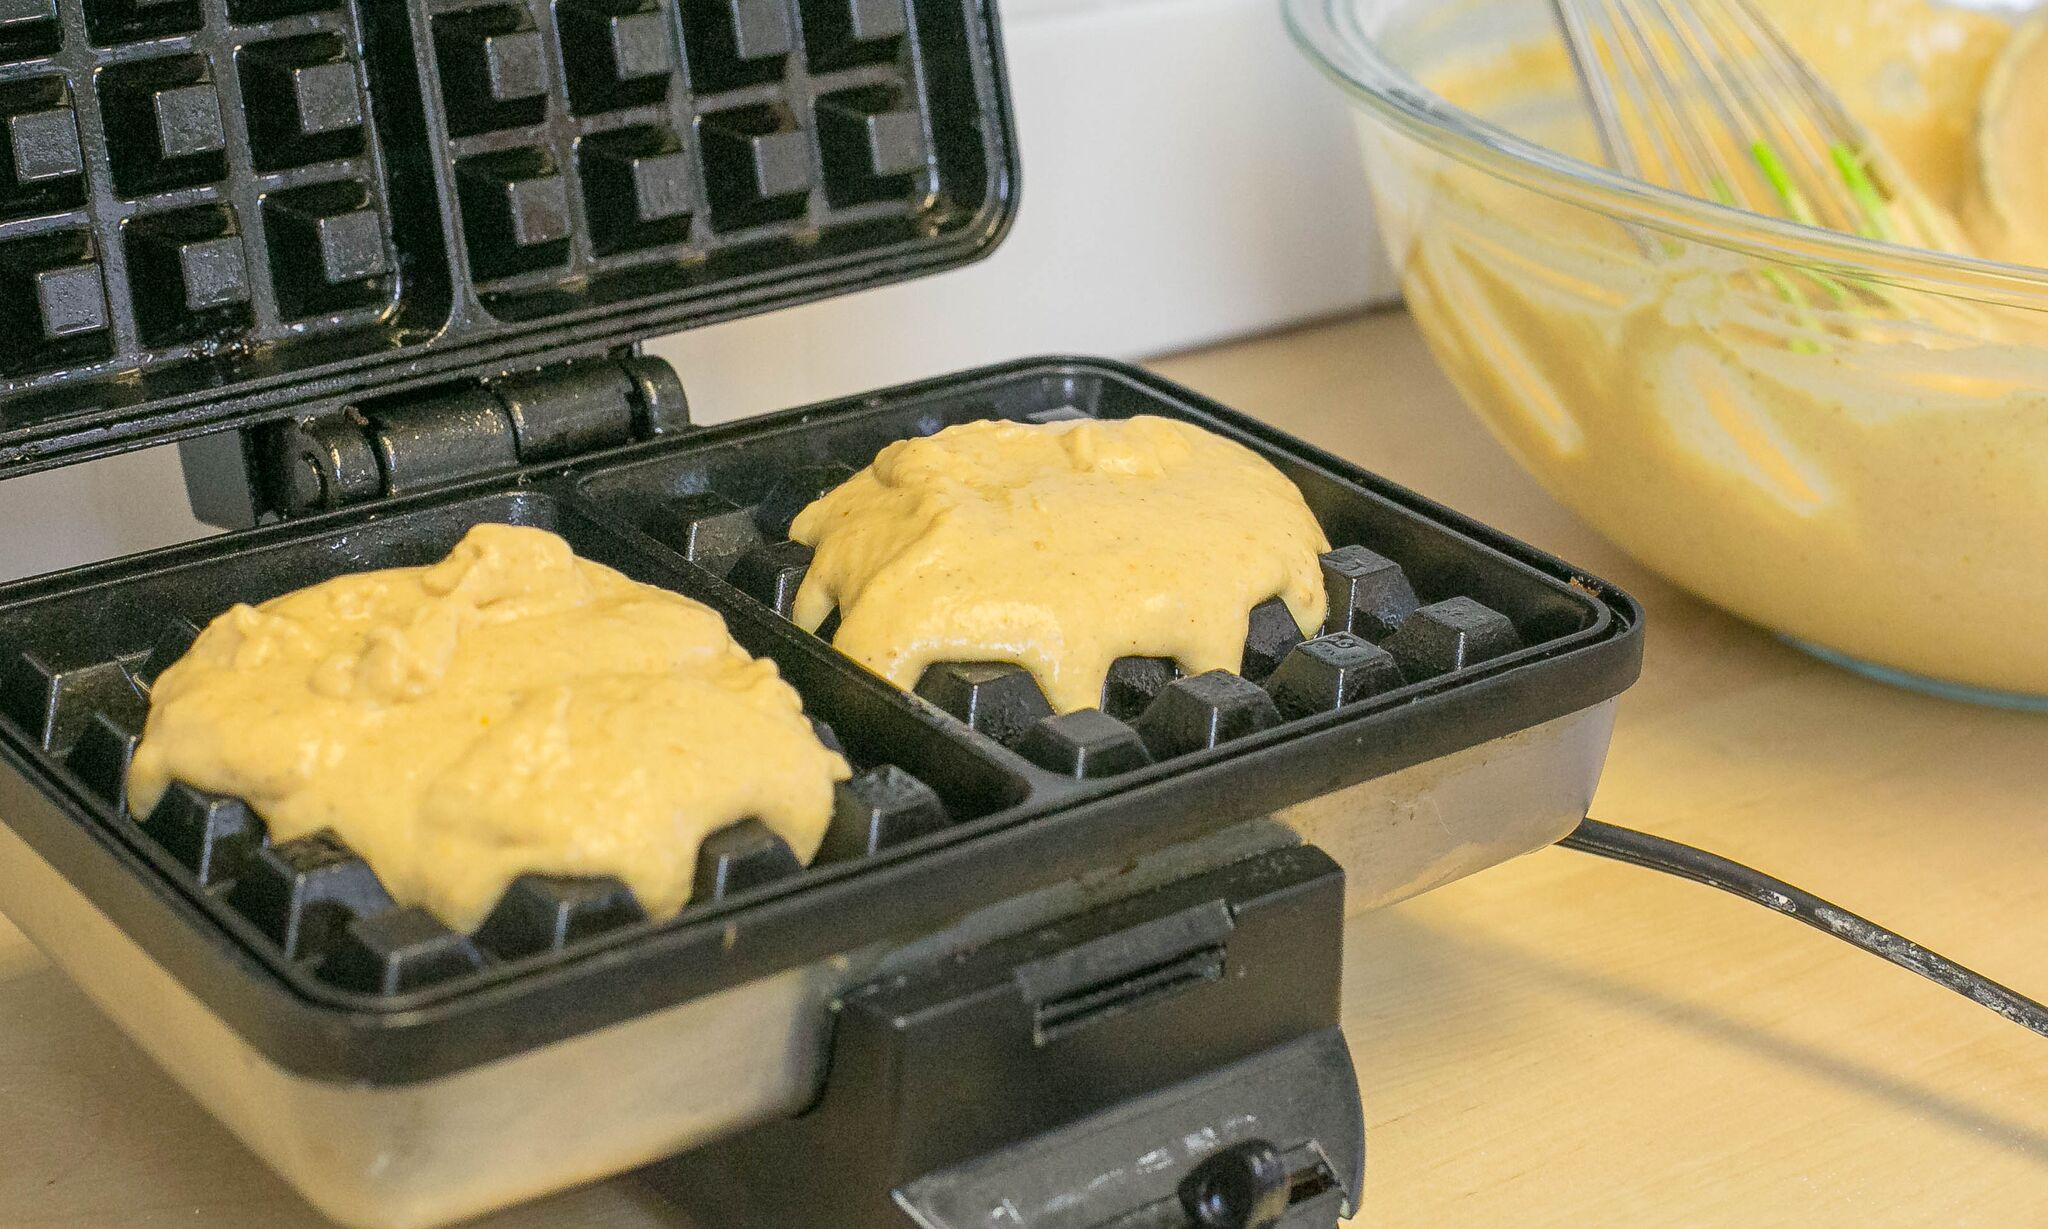 Add one ladle full of batter into waffle iron and cook till lightly brown and crisp.